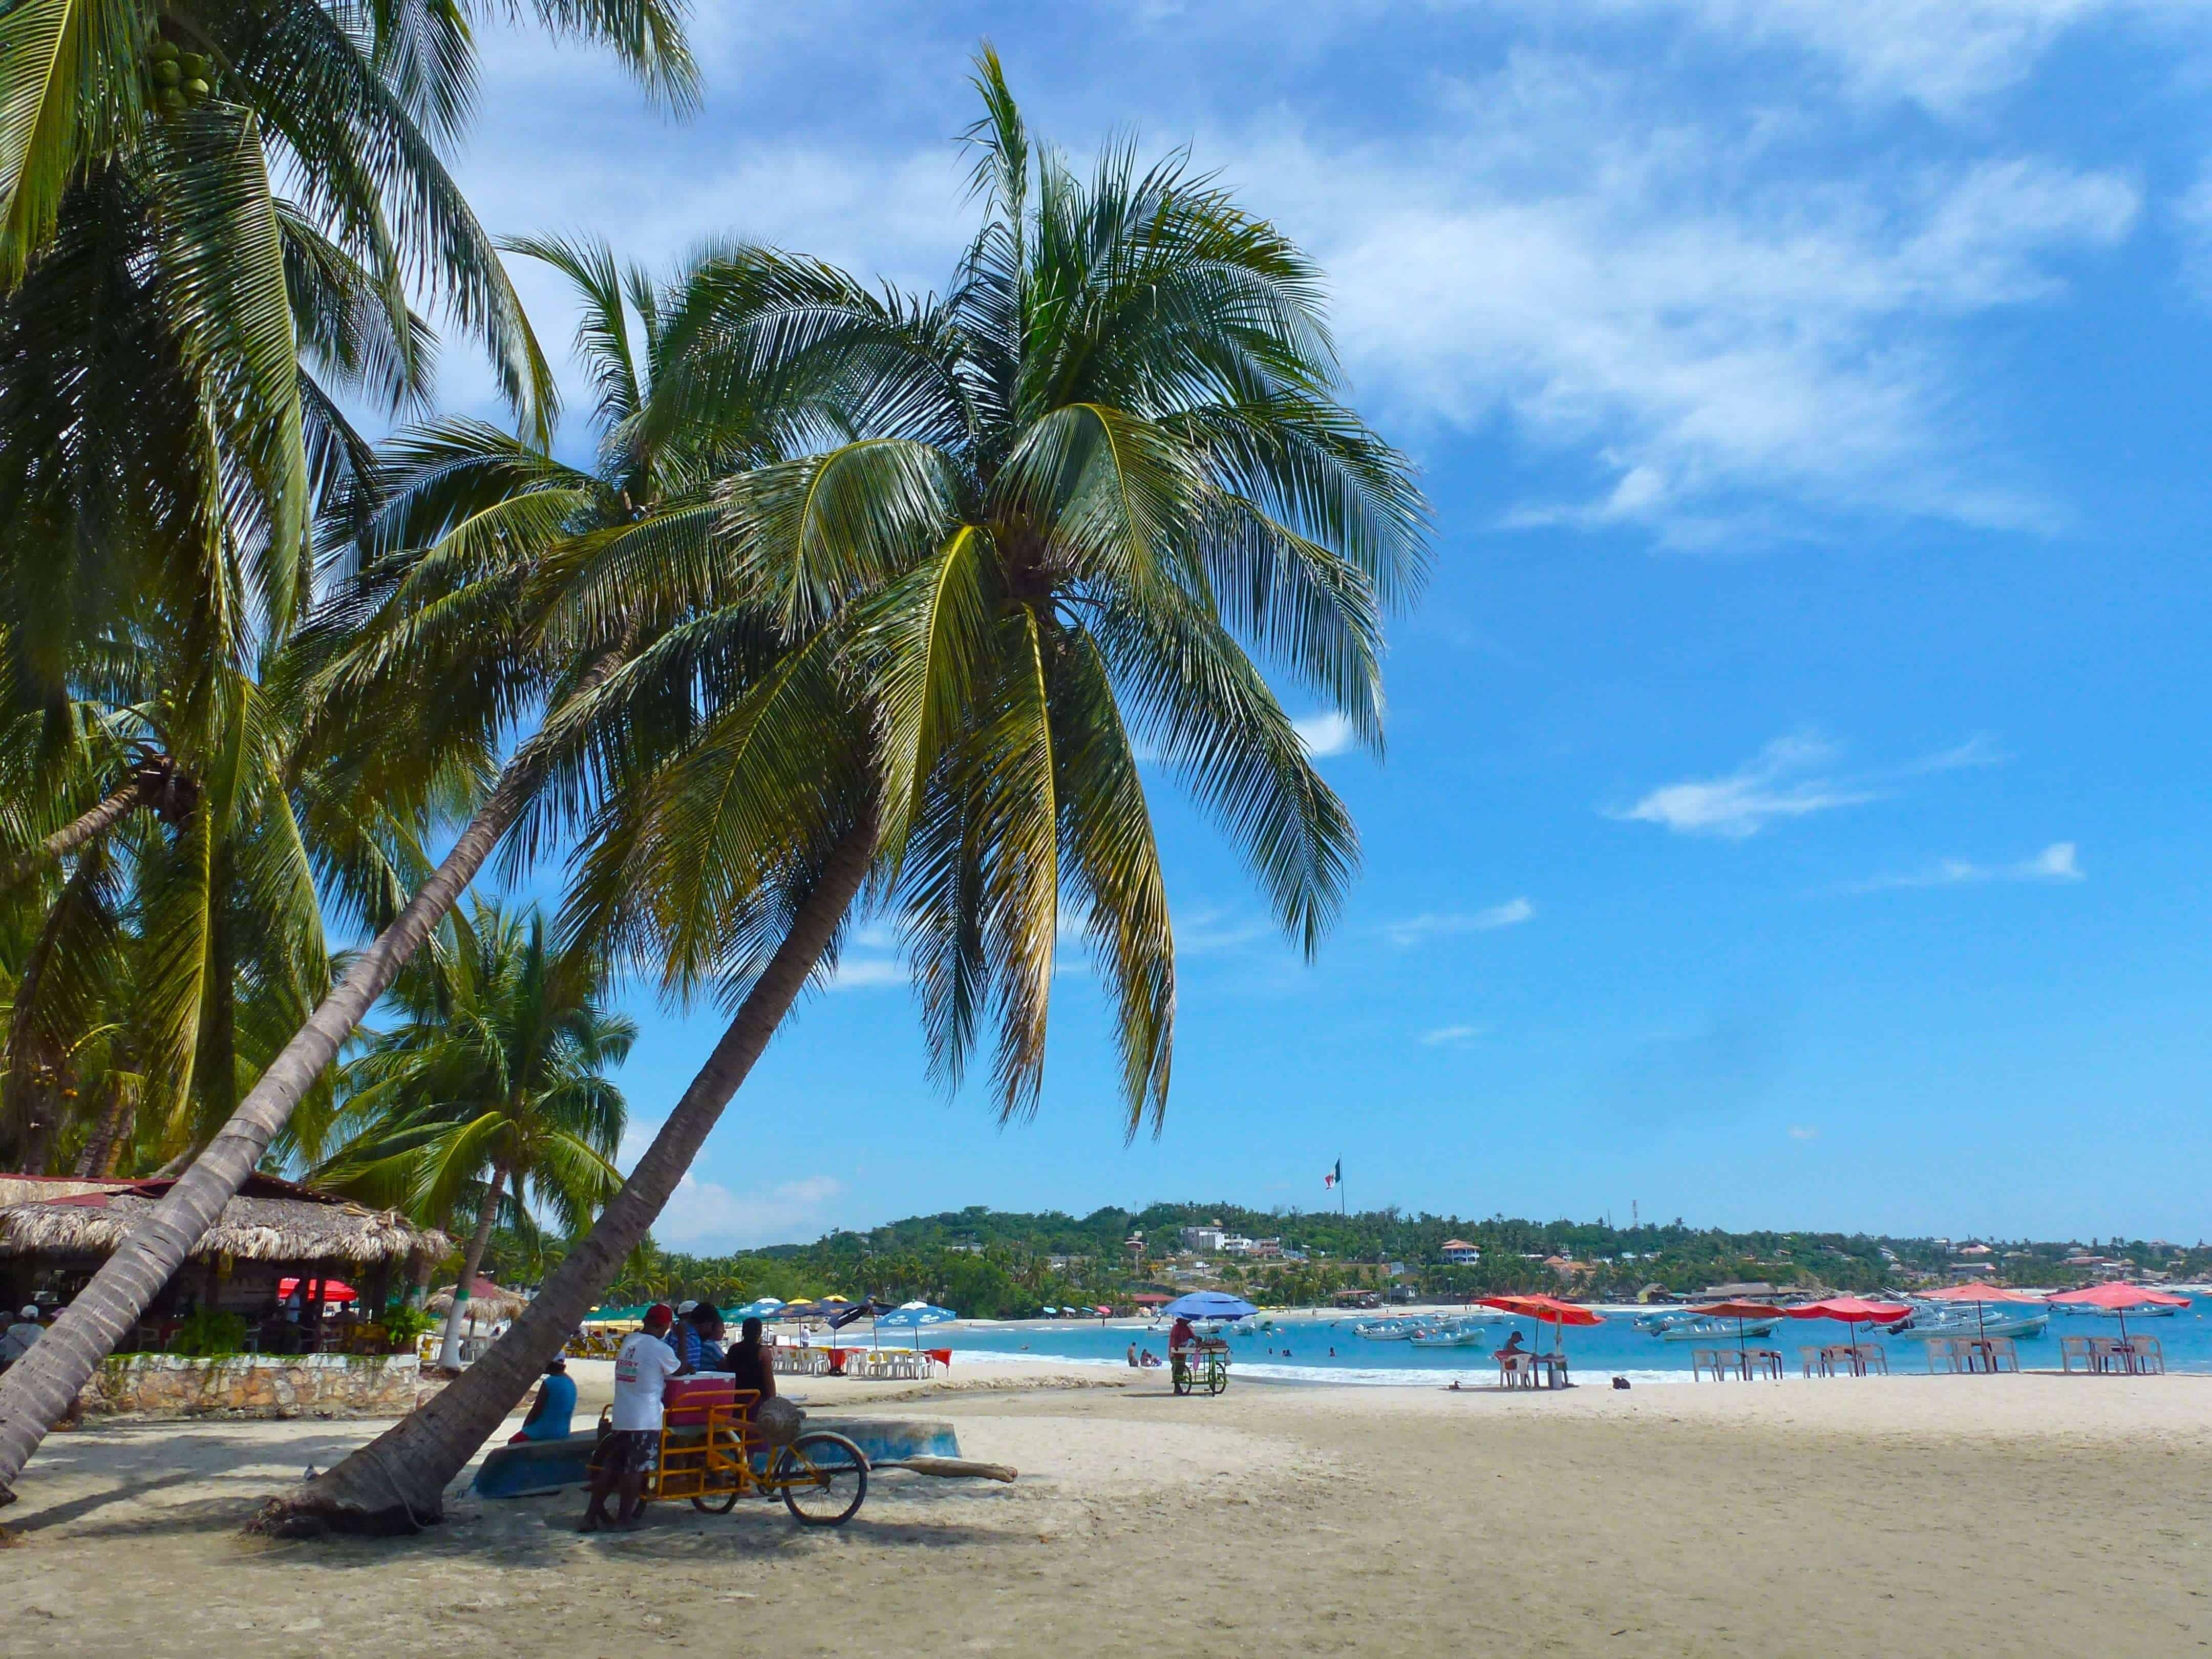 Beginner's Guide to the Best Puerto Escondido Beaches